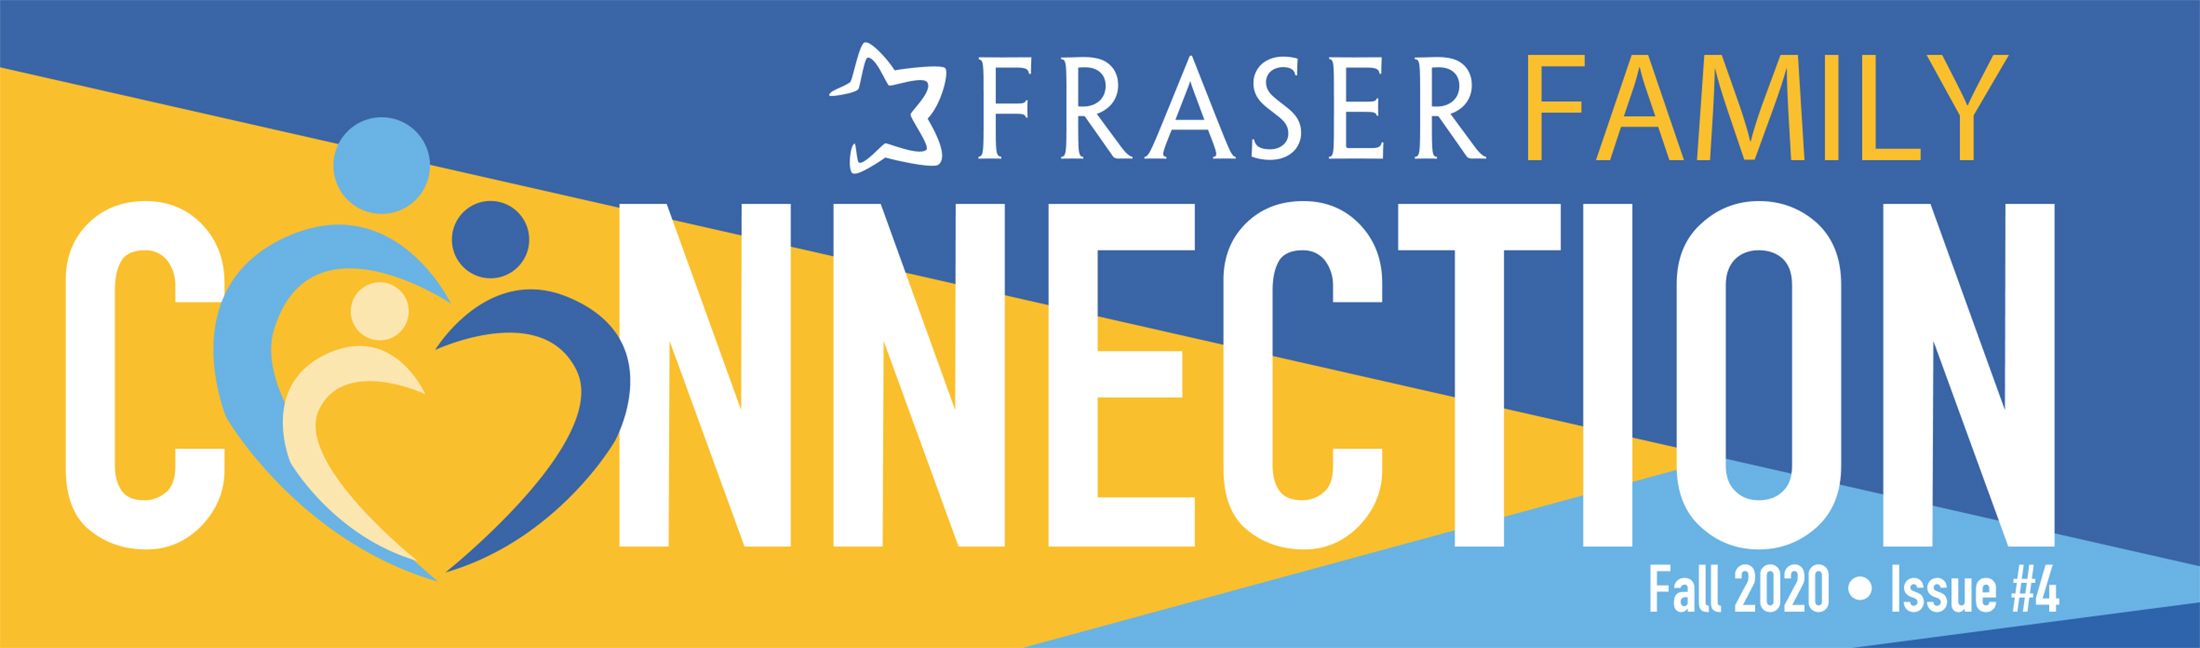 Fraser Family Connection - Fall 2020